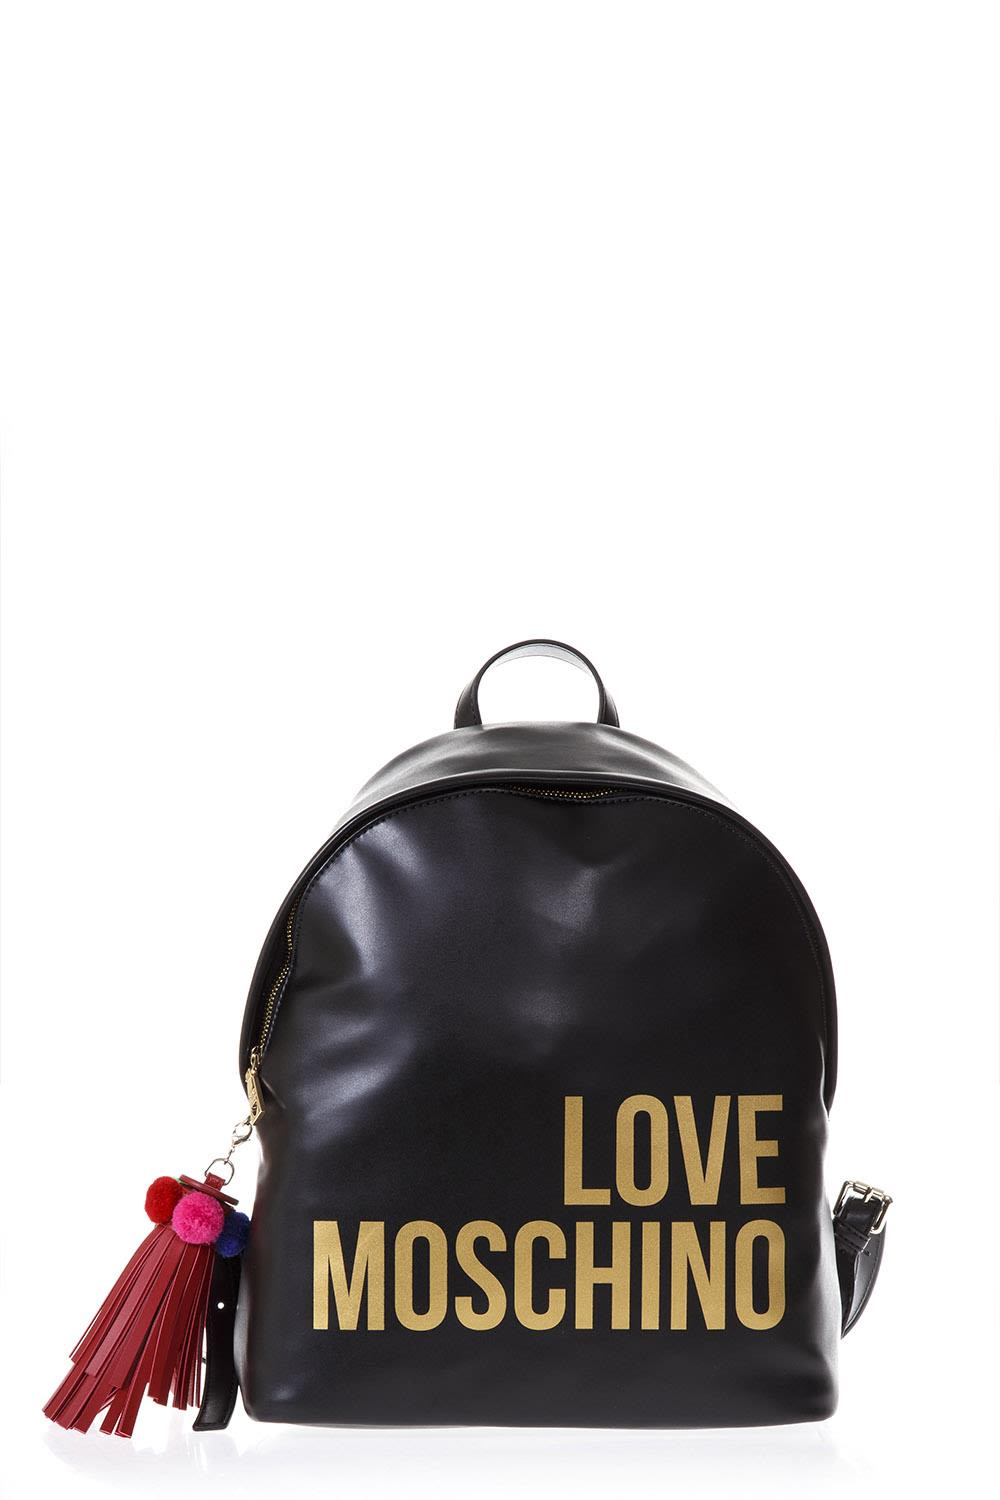 Love Moschino Black Faux Leather Backpack With Logo